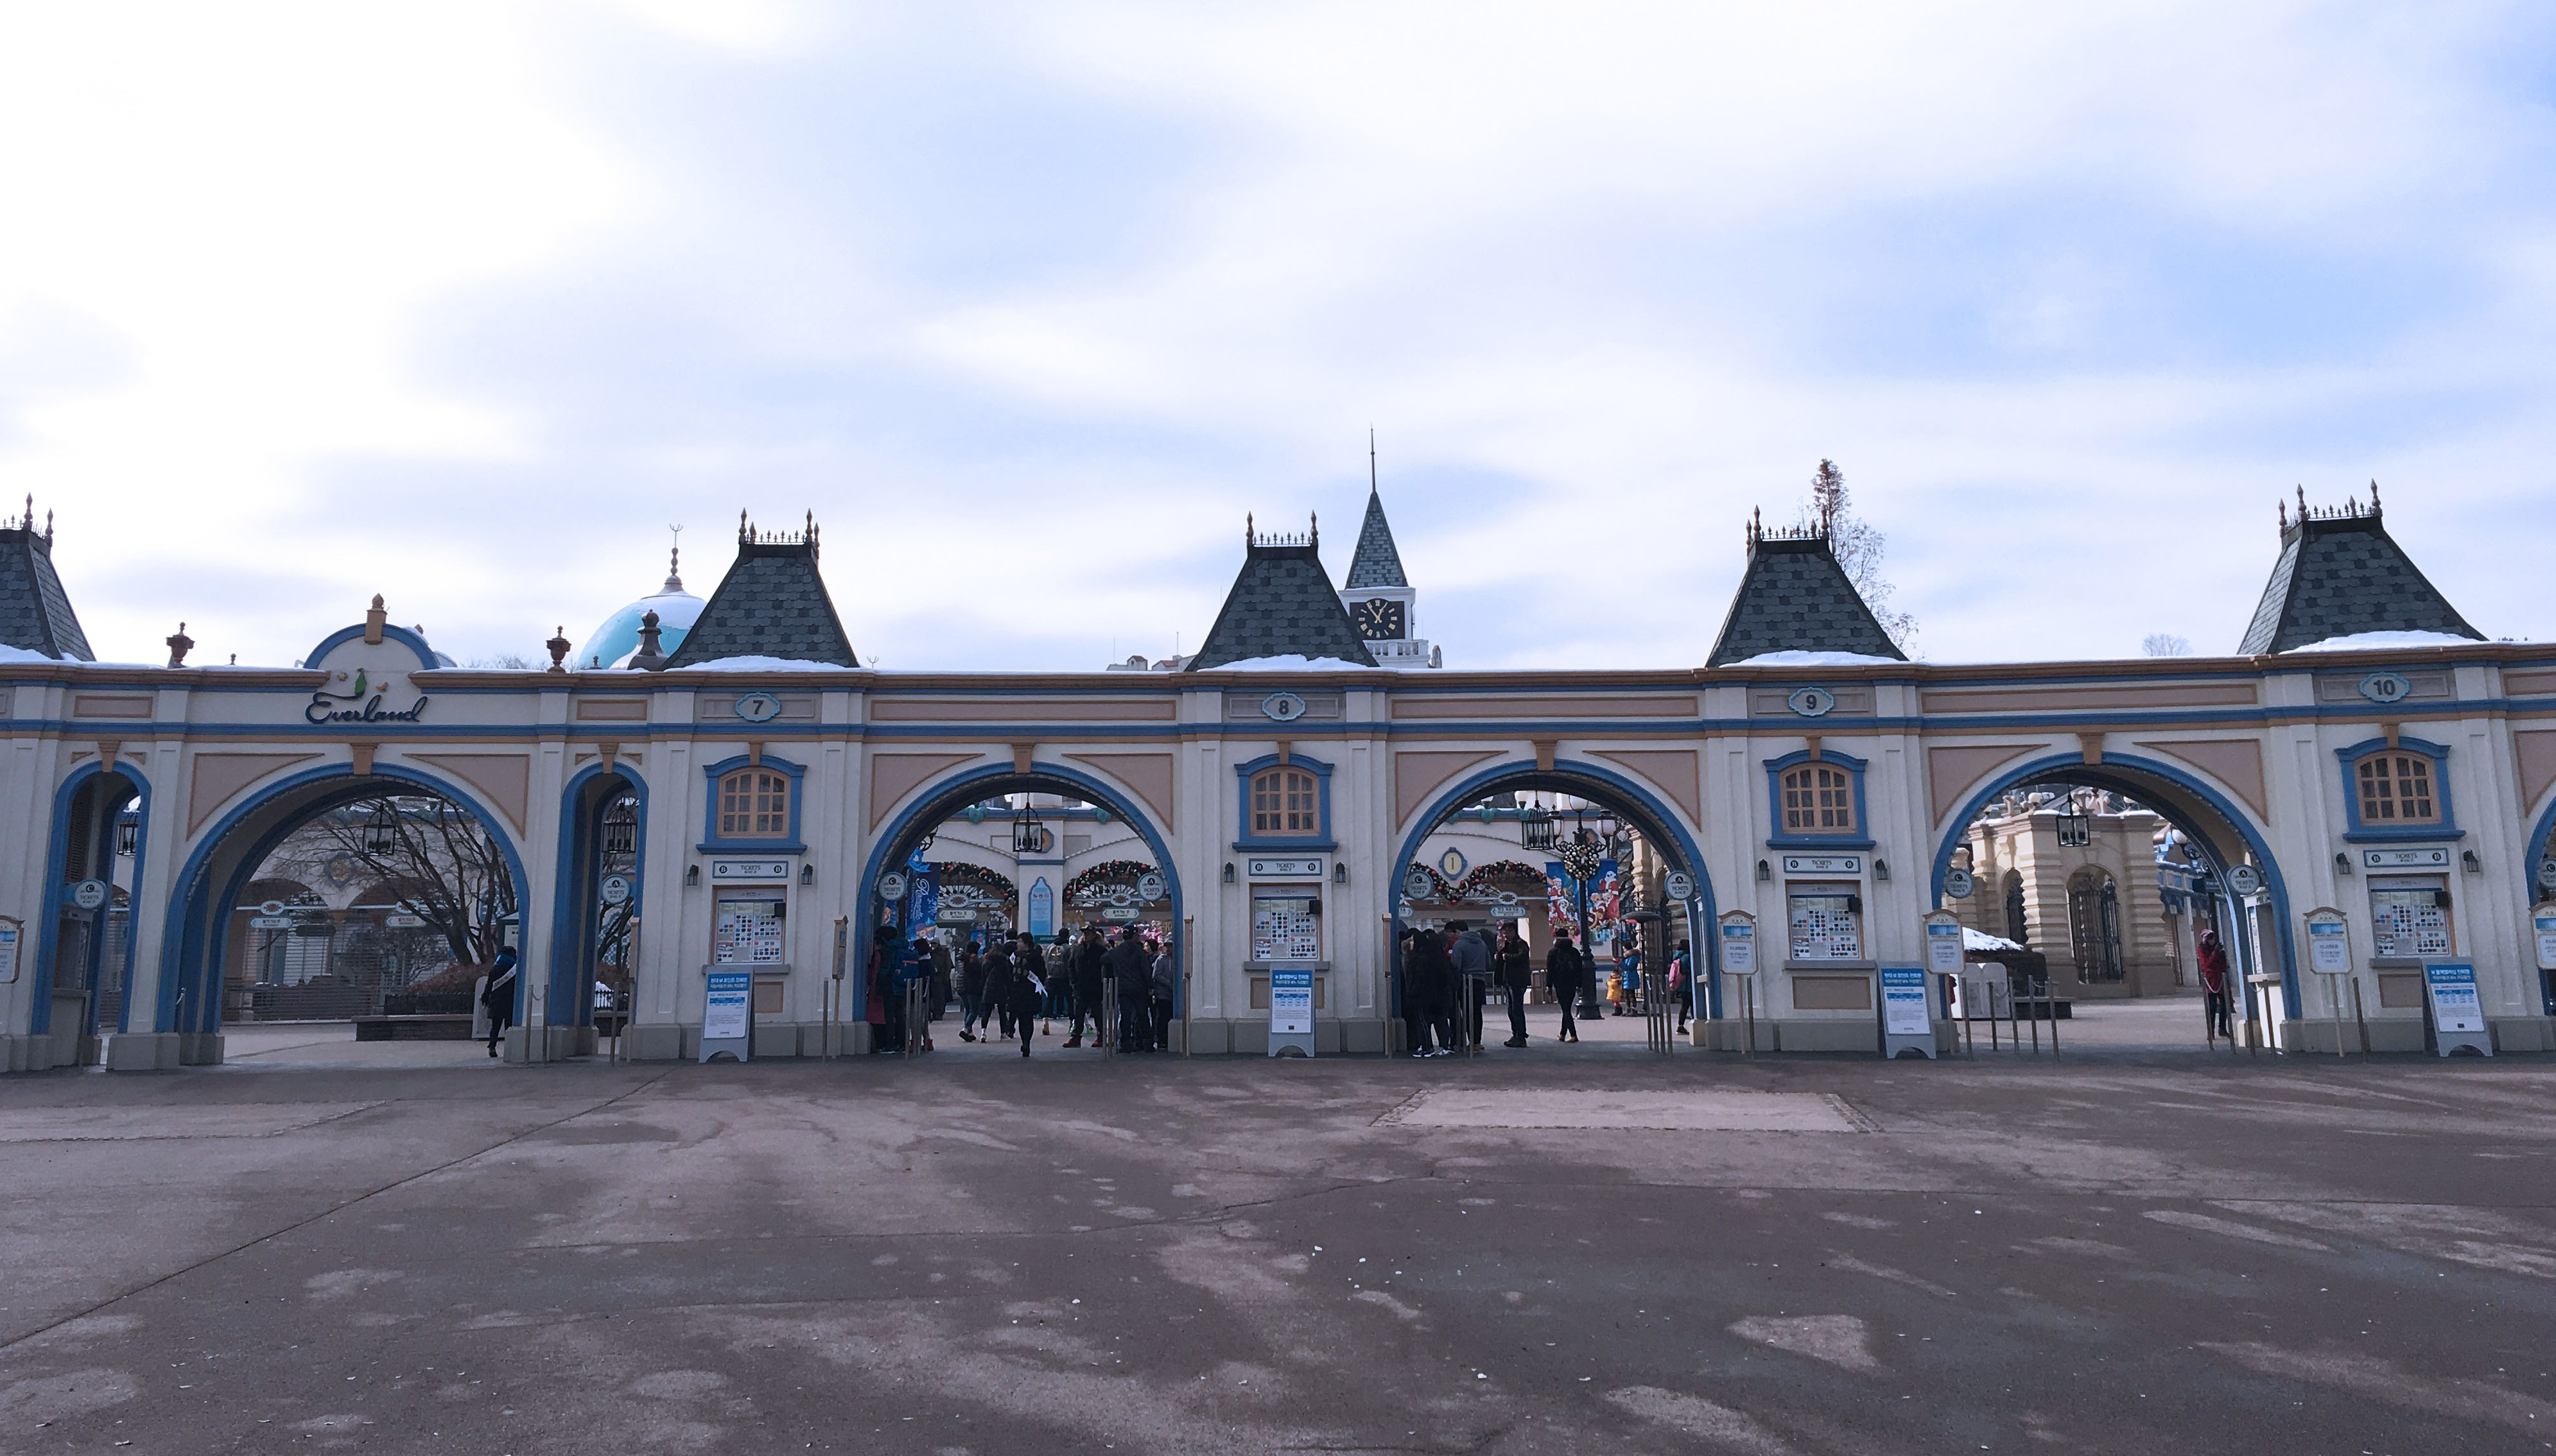 Entrance of Everland, a theme park that caters to both the young and old with a wide variety of rides.